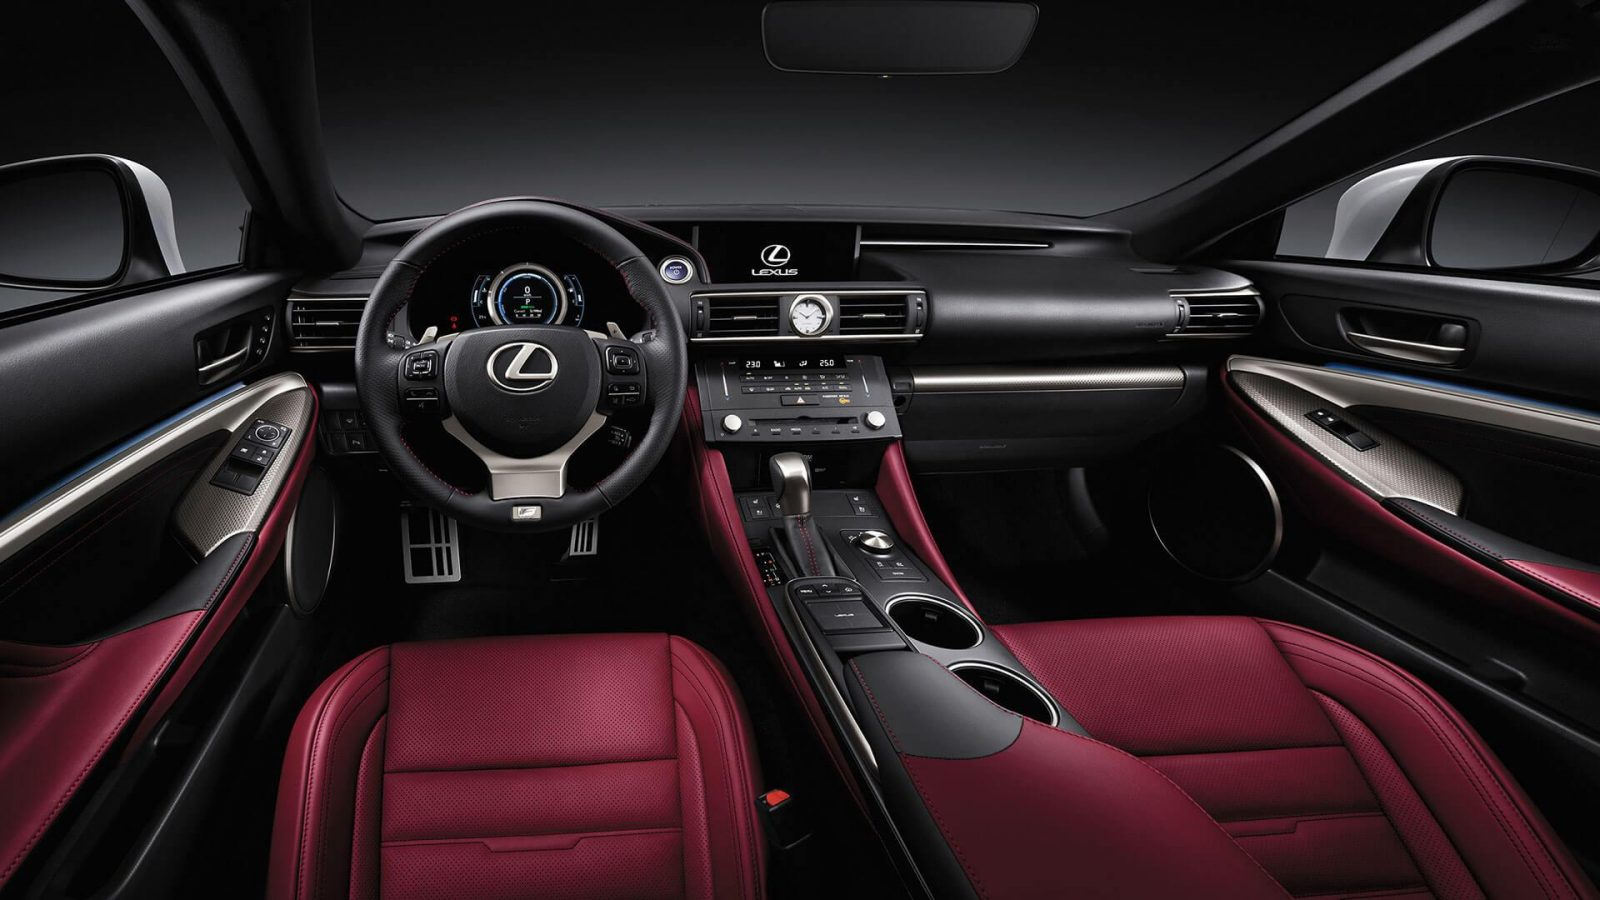 2017 Lexus Rc Gallery 002 Interior 1920X1080 Tcm 3169 1028775